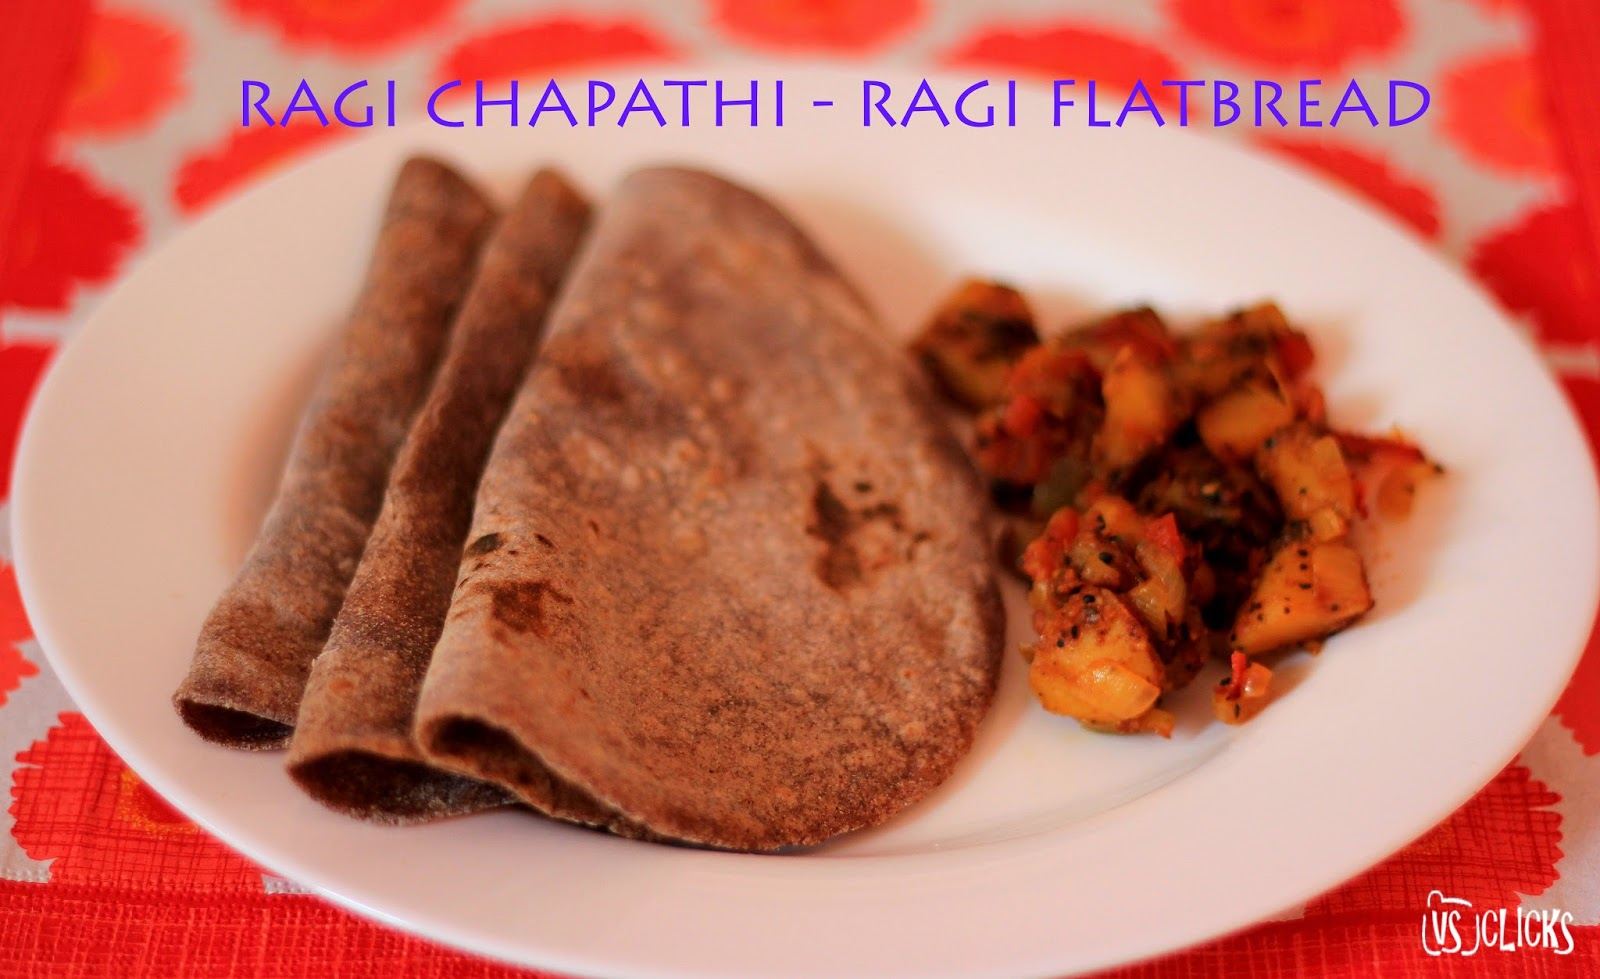 Ragi Chapathi Indian Ragi Flatbread